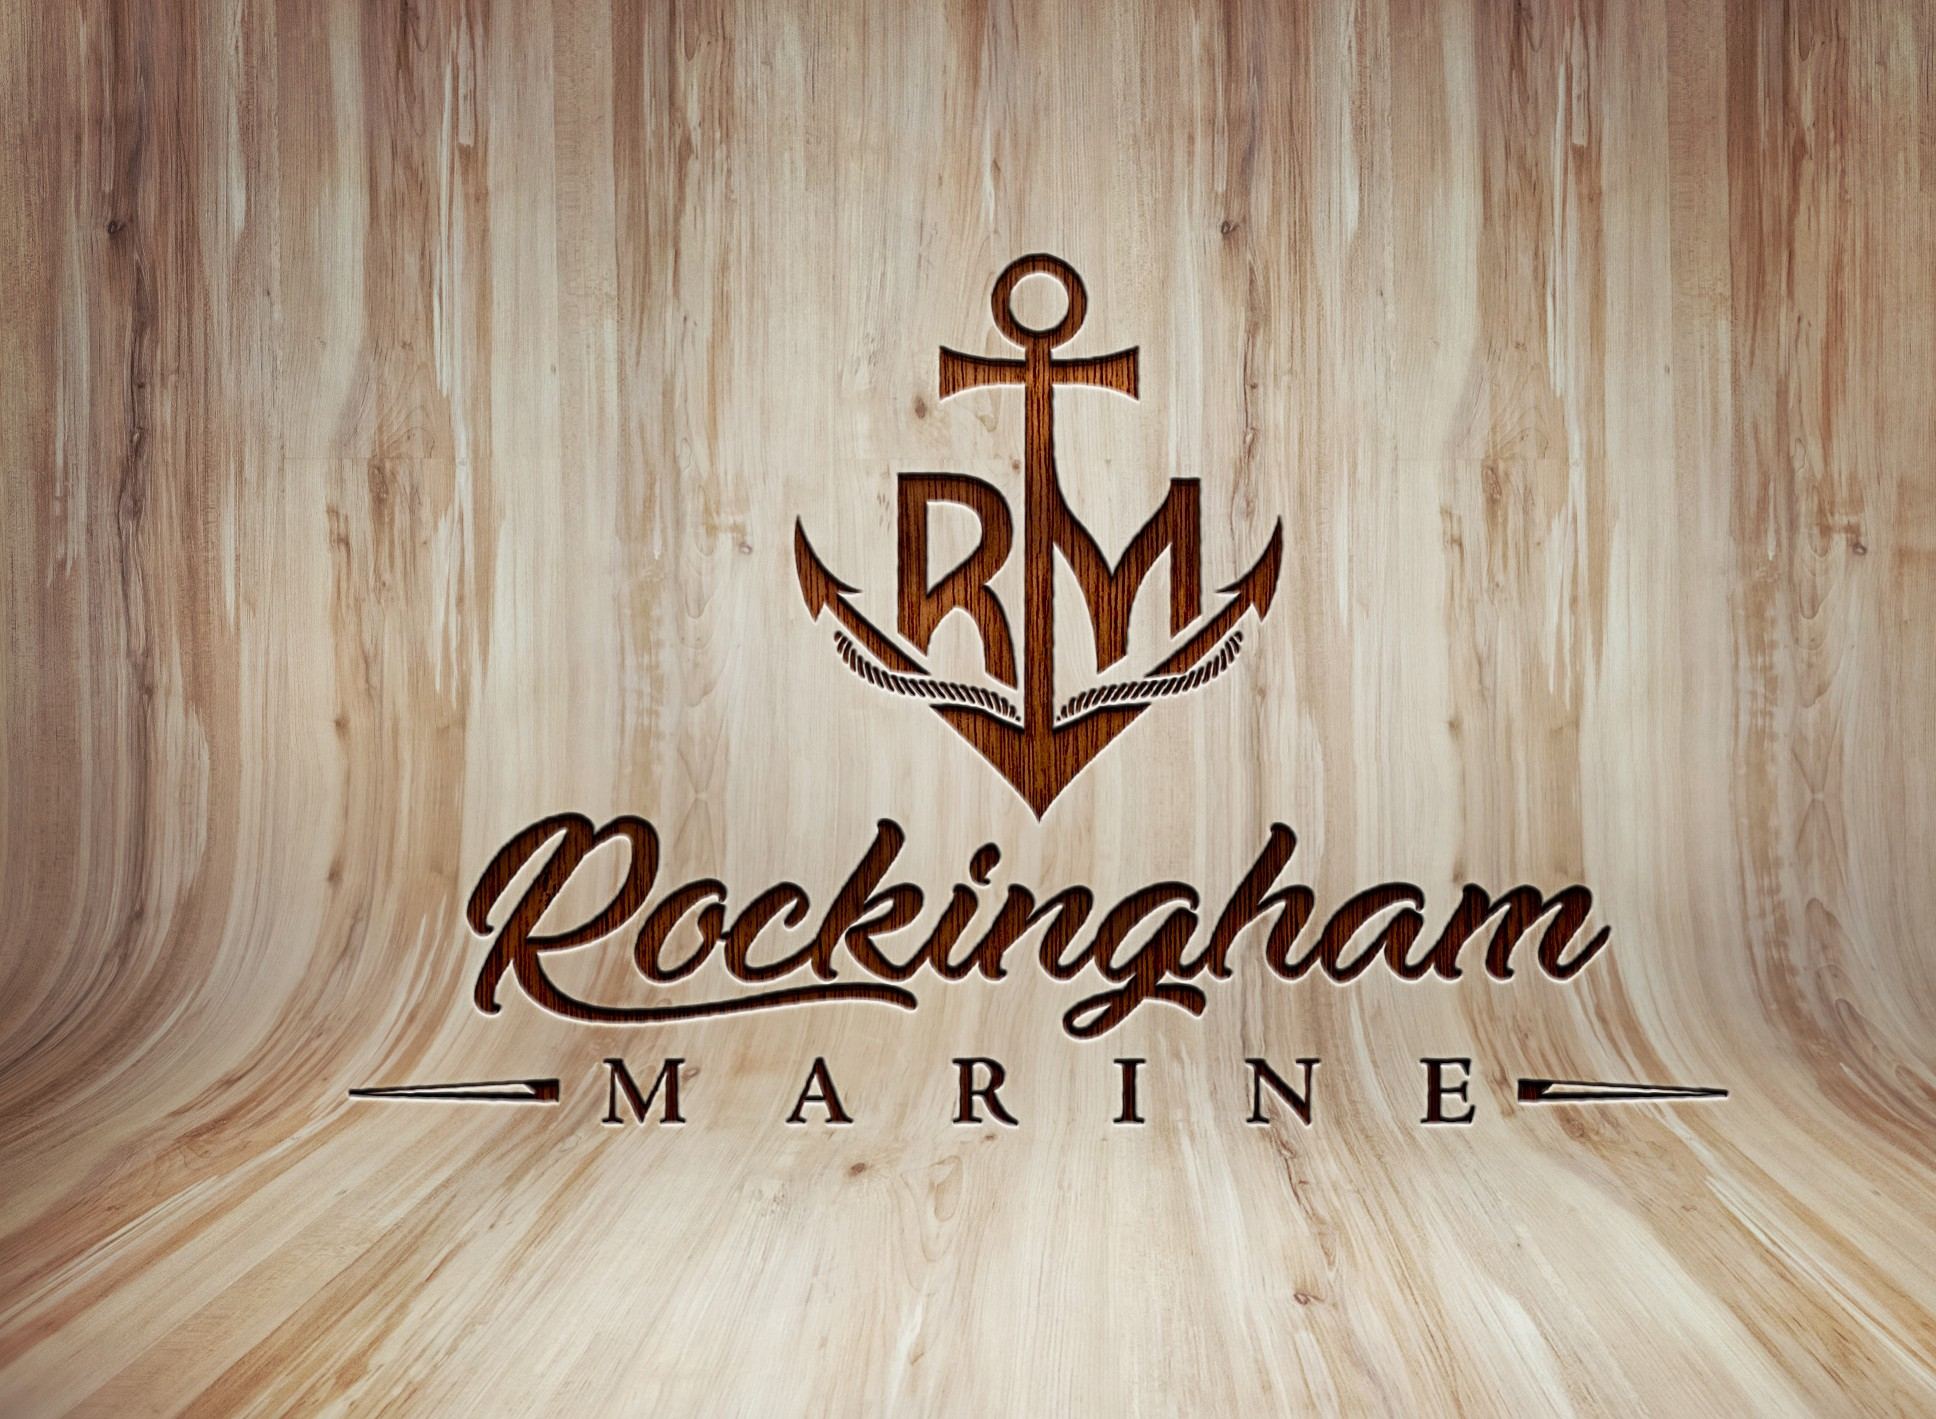 Design a rock and roll themed font and logo for Rockingham Marine. See attachments for inspiration.